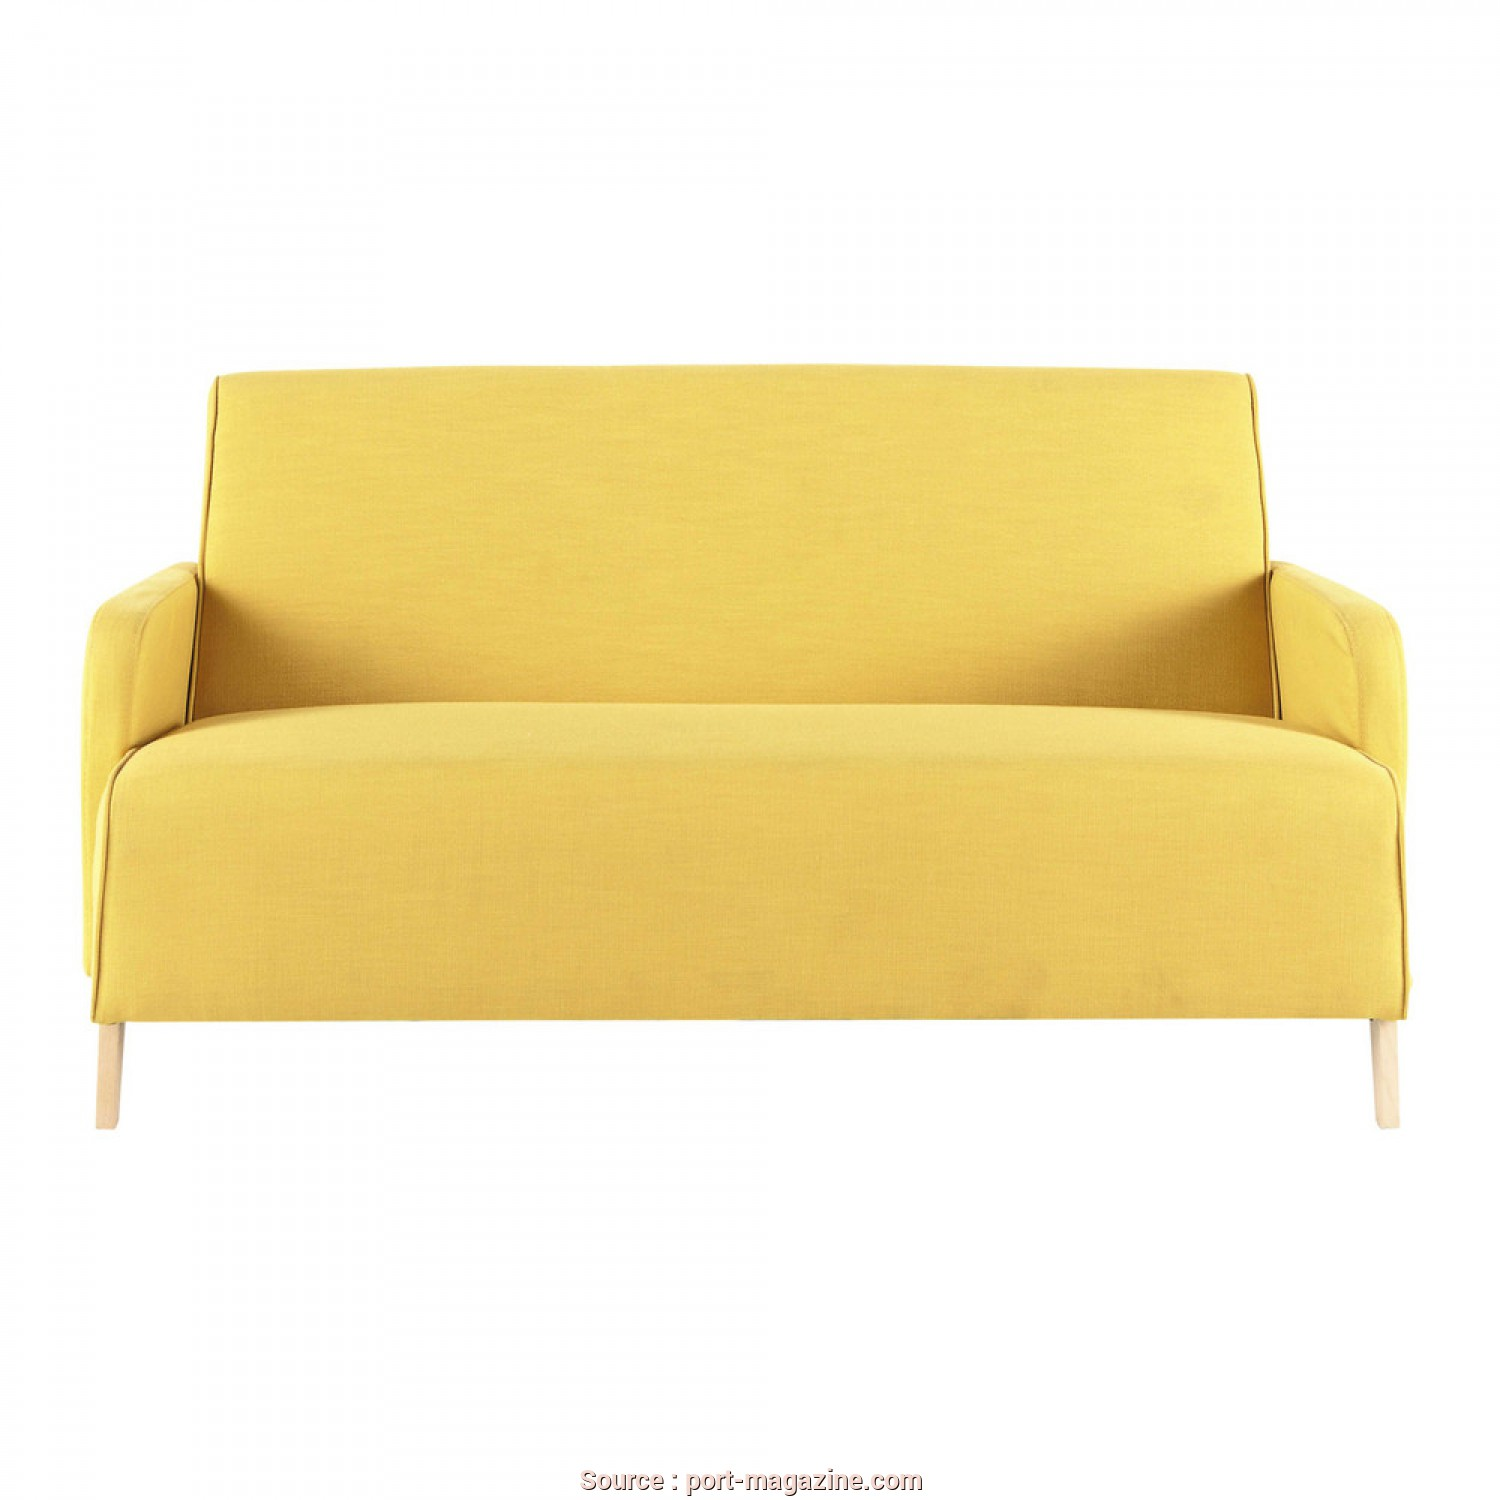 Divano, Posti Maison Du Monde, A Buon Mercato 2 Seater Fabric Sofa In Yellow Adam, £209.00, Port